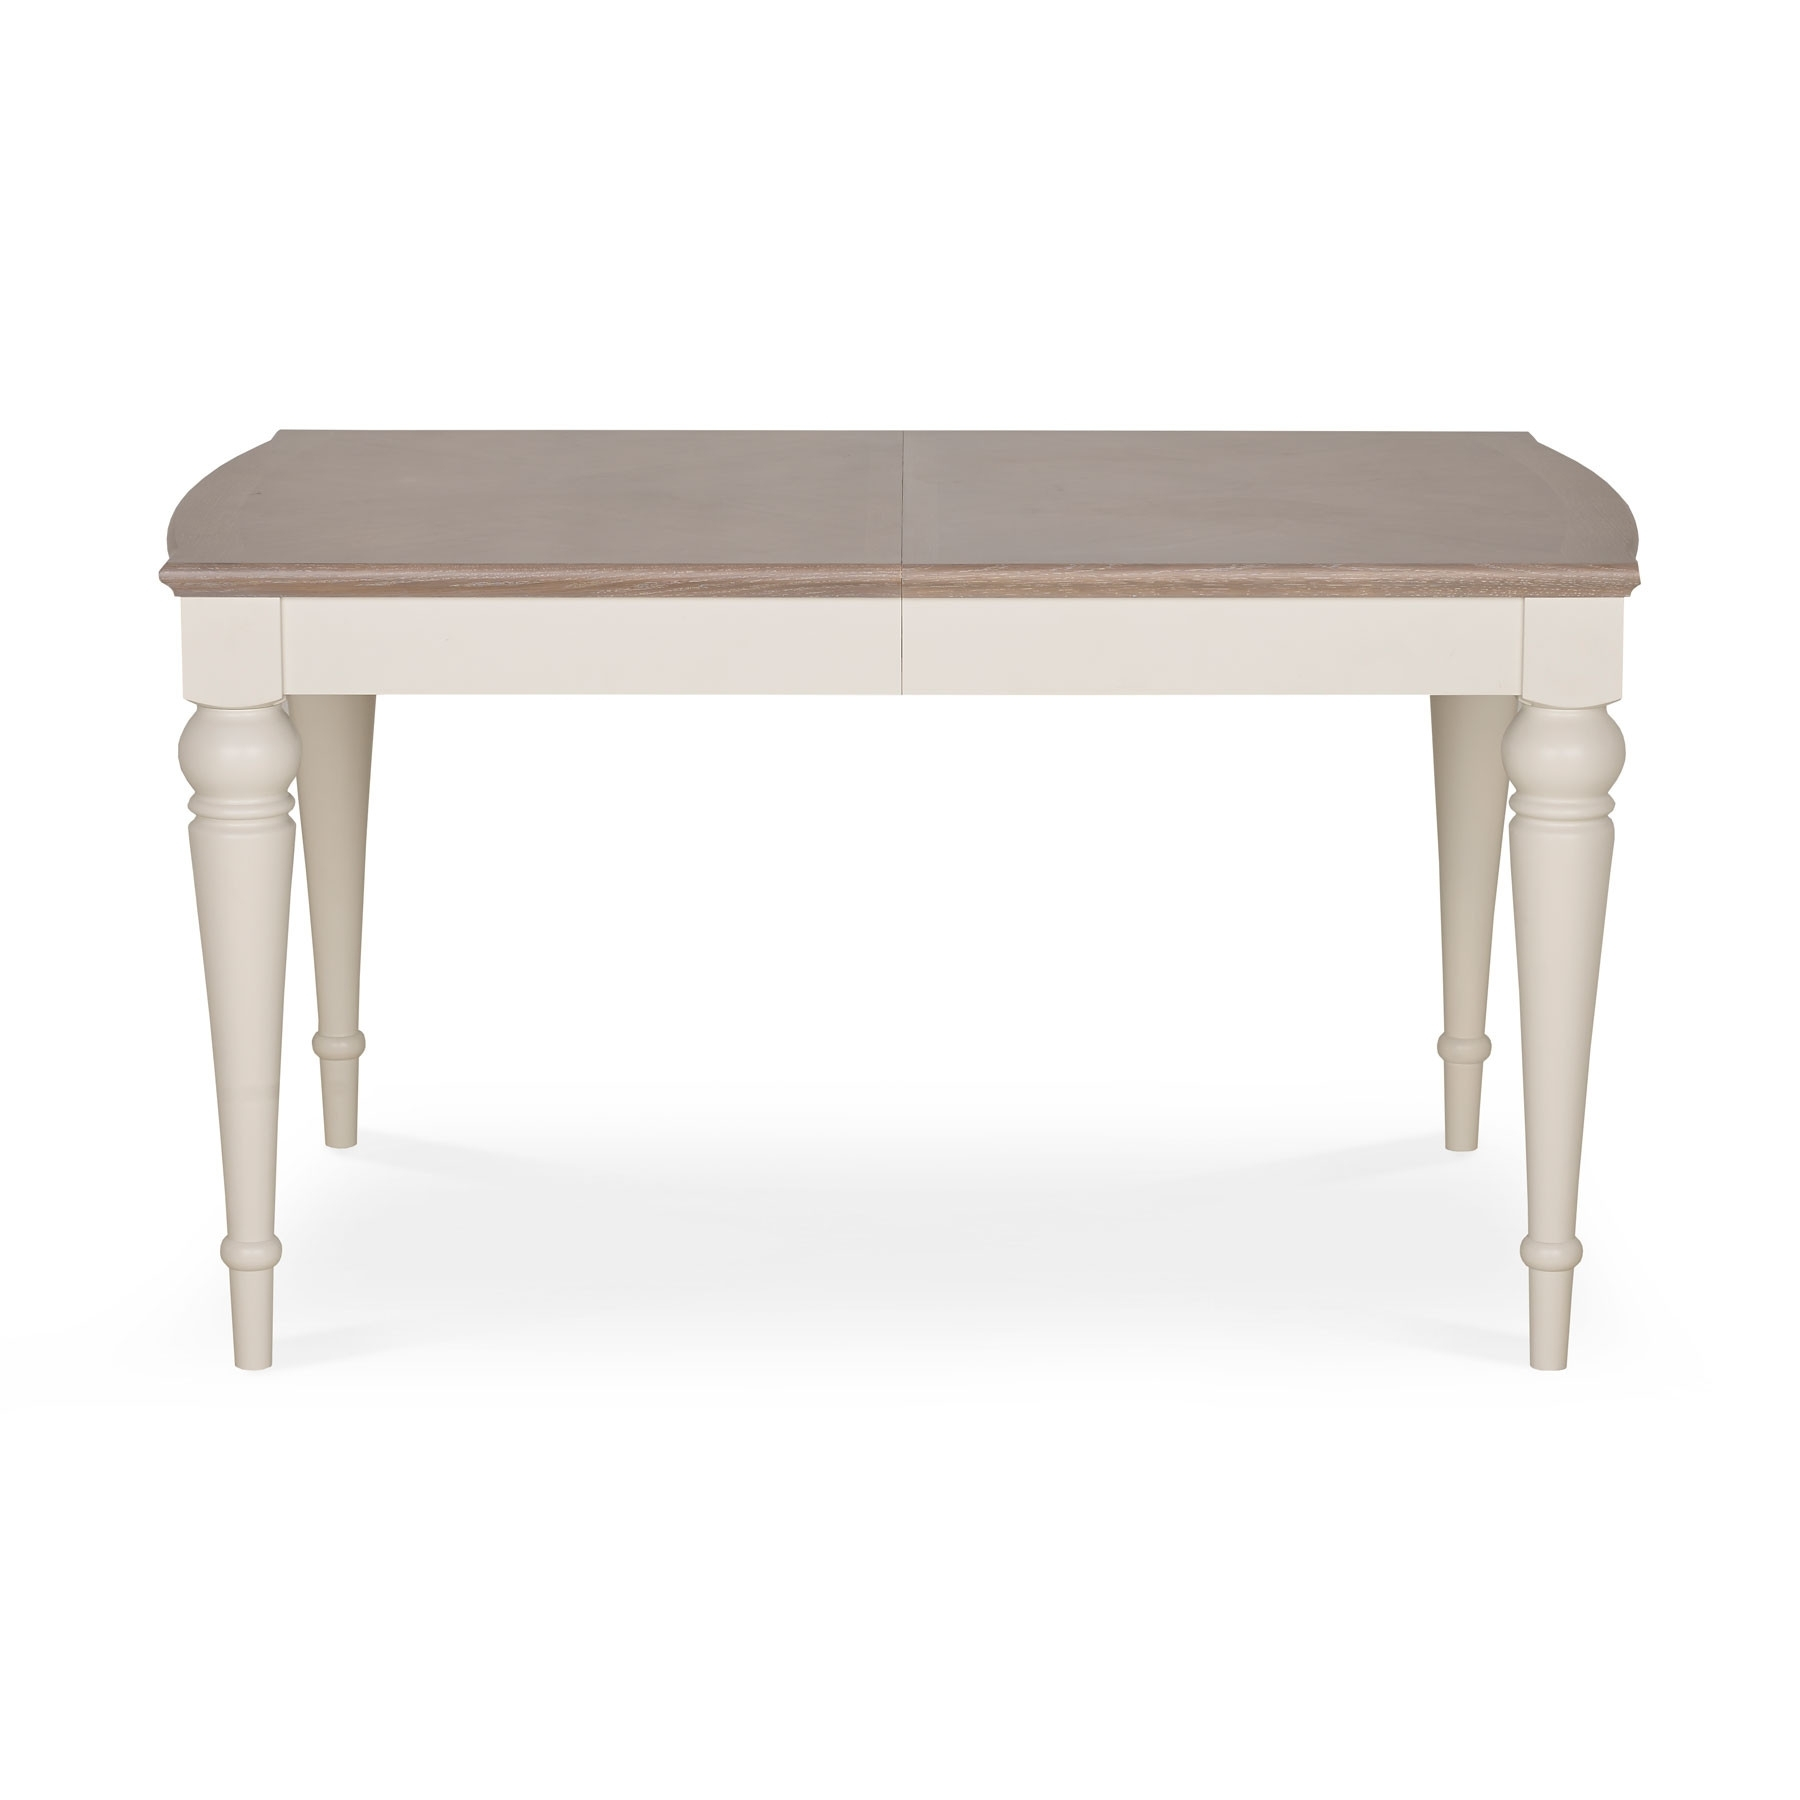 Hampton Grey Wash Oak Small Extending Dining Table Inside Fashionable Small Extending Dining Tables And Chairs (Gallery 14 of 25)